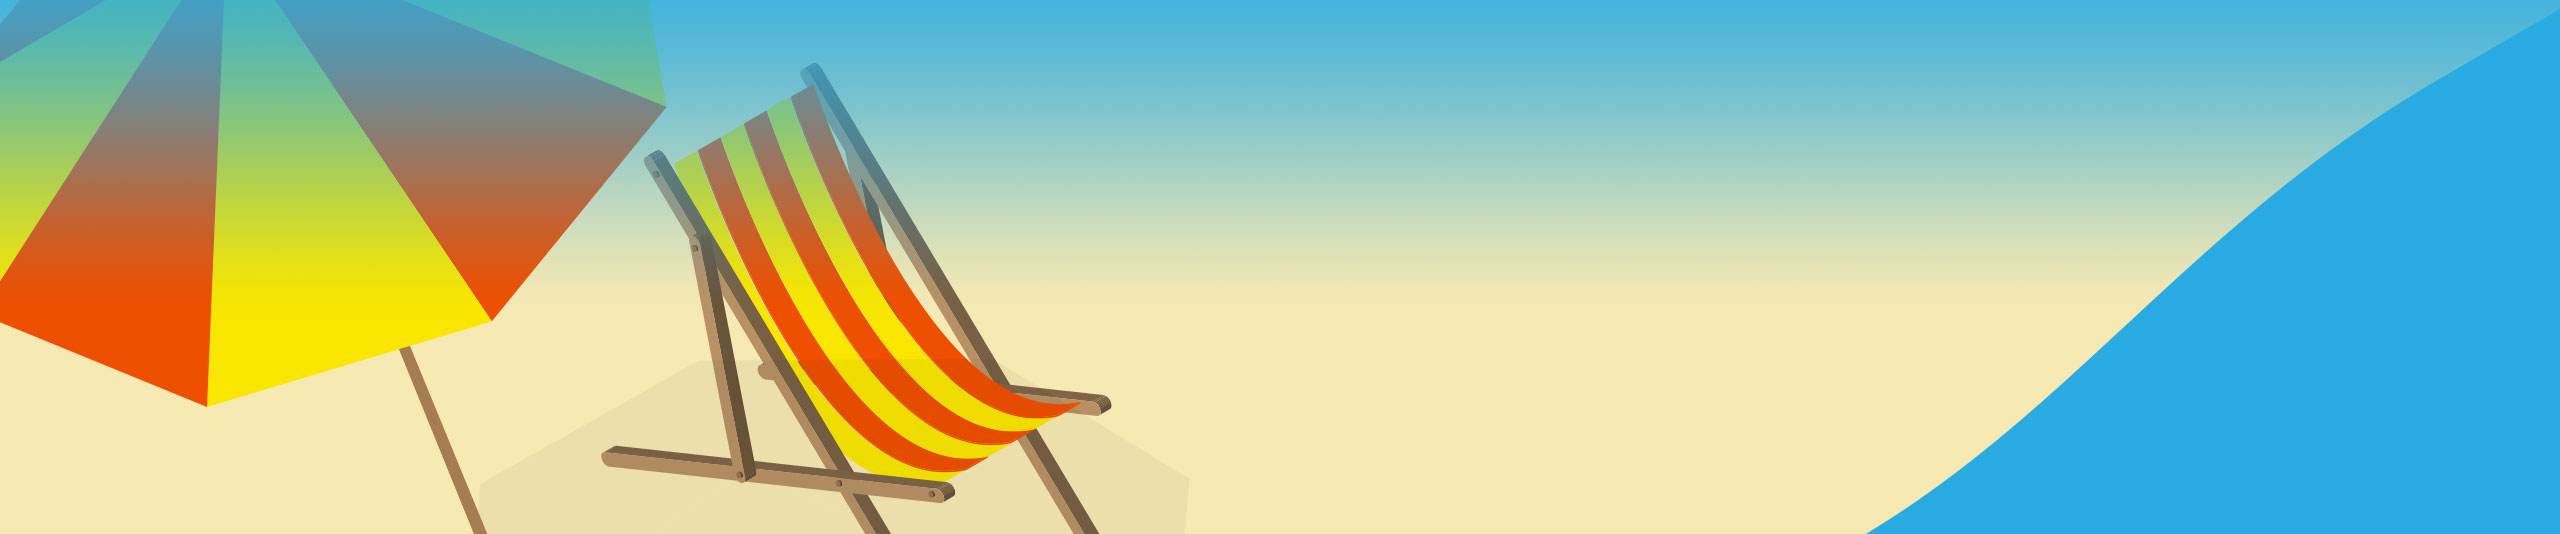 Isometric Beach Chair with Sun Umbrella in Adobe Illustrator